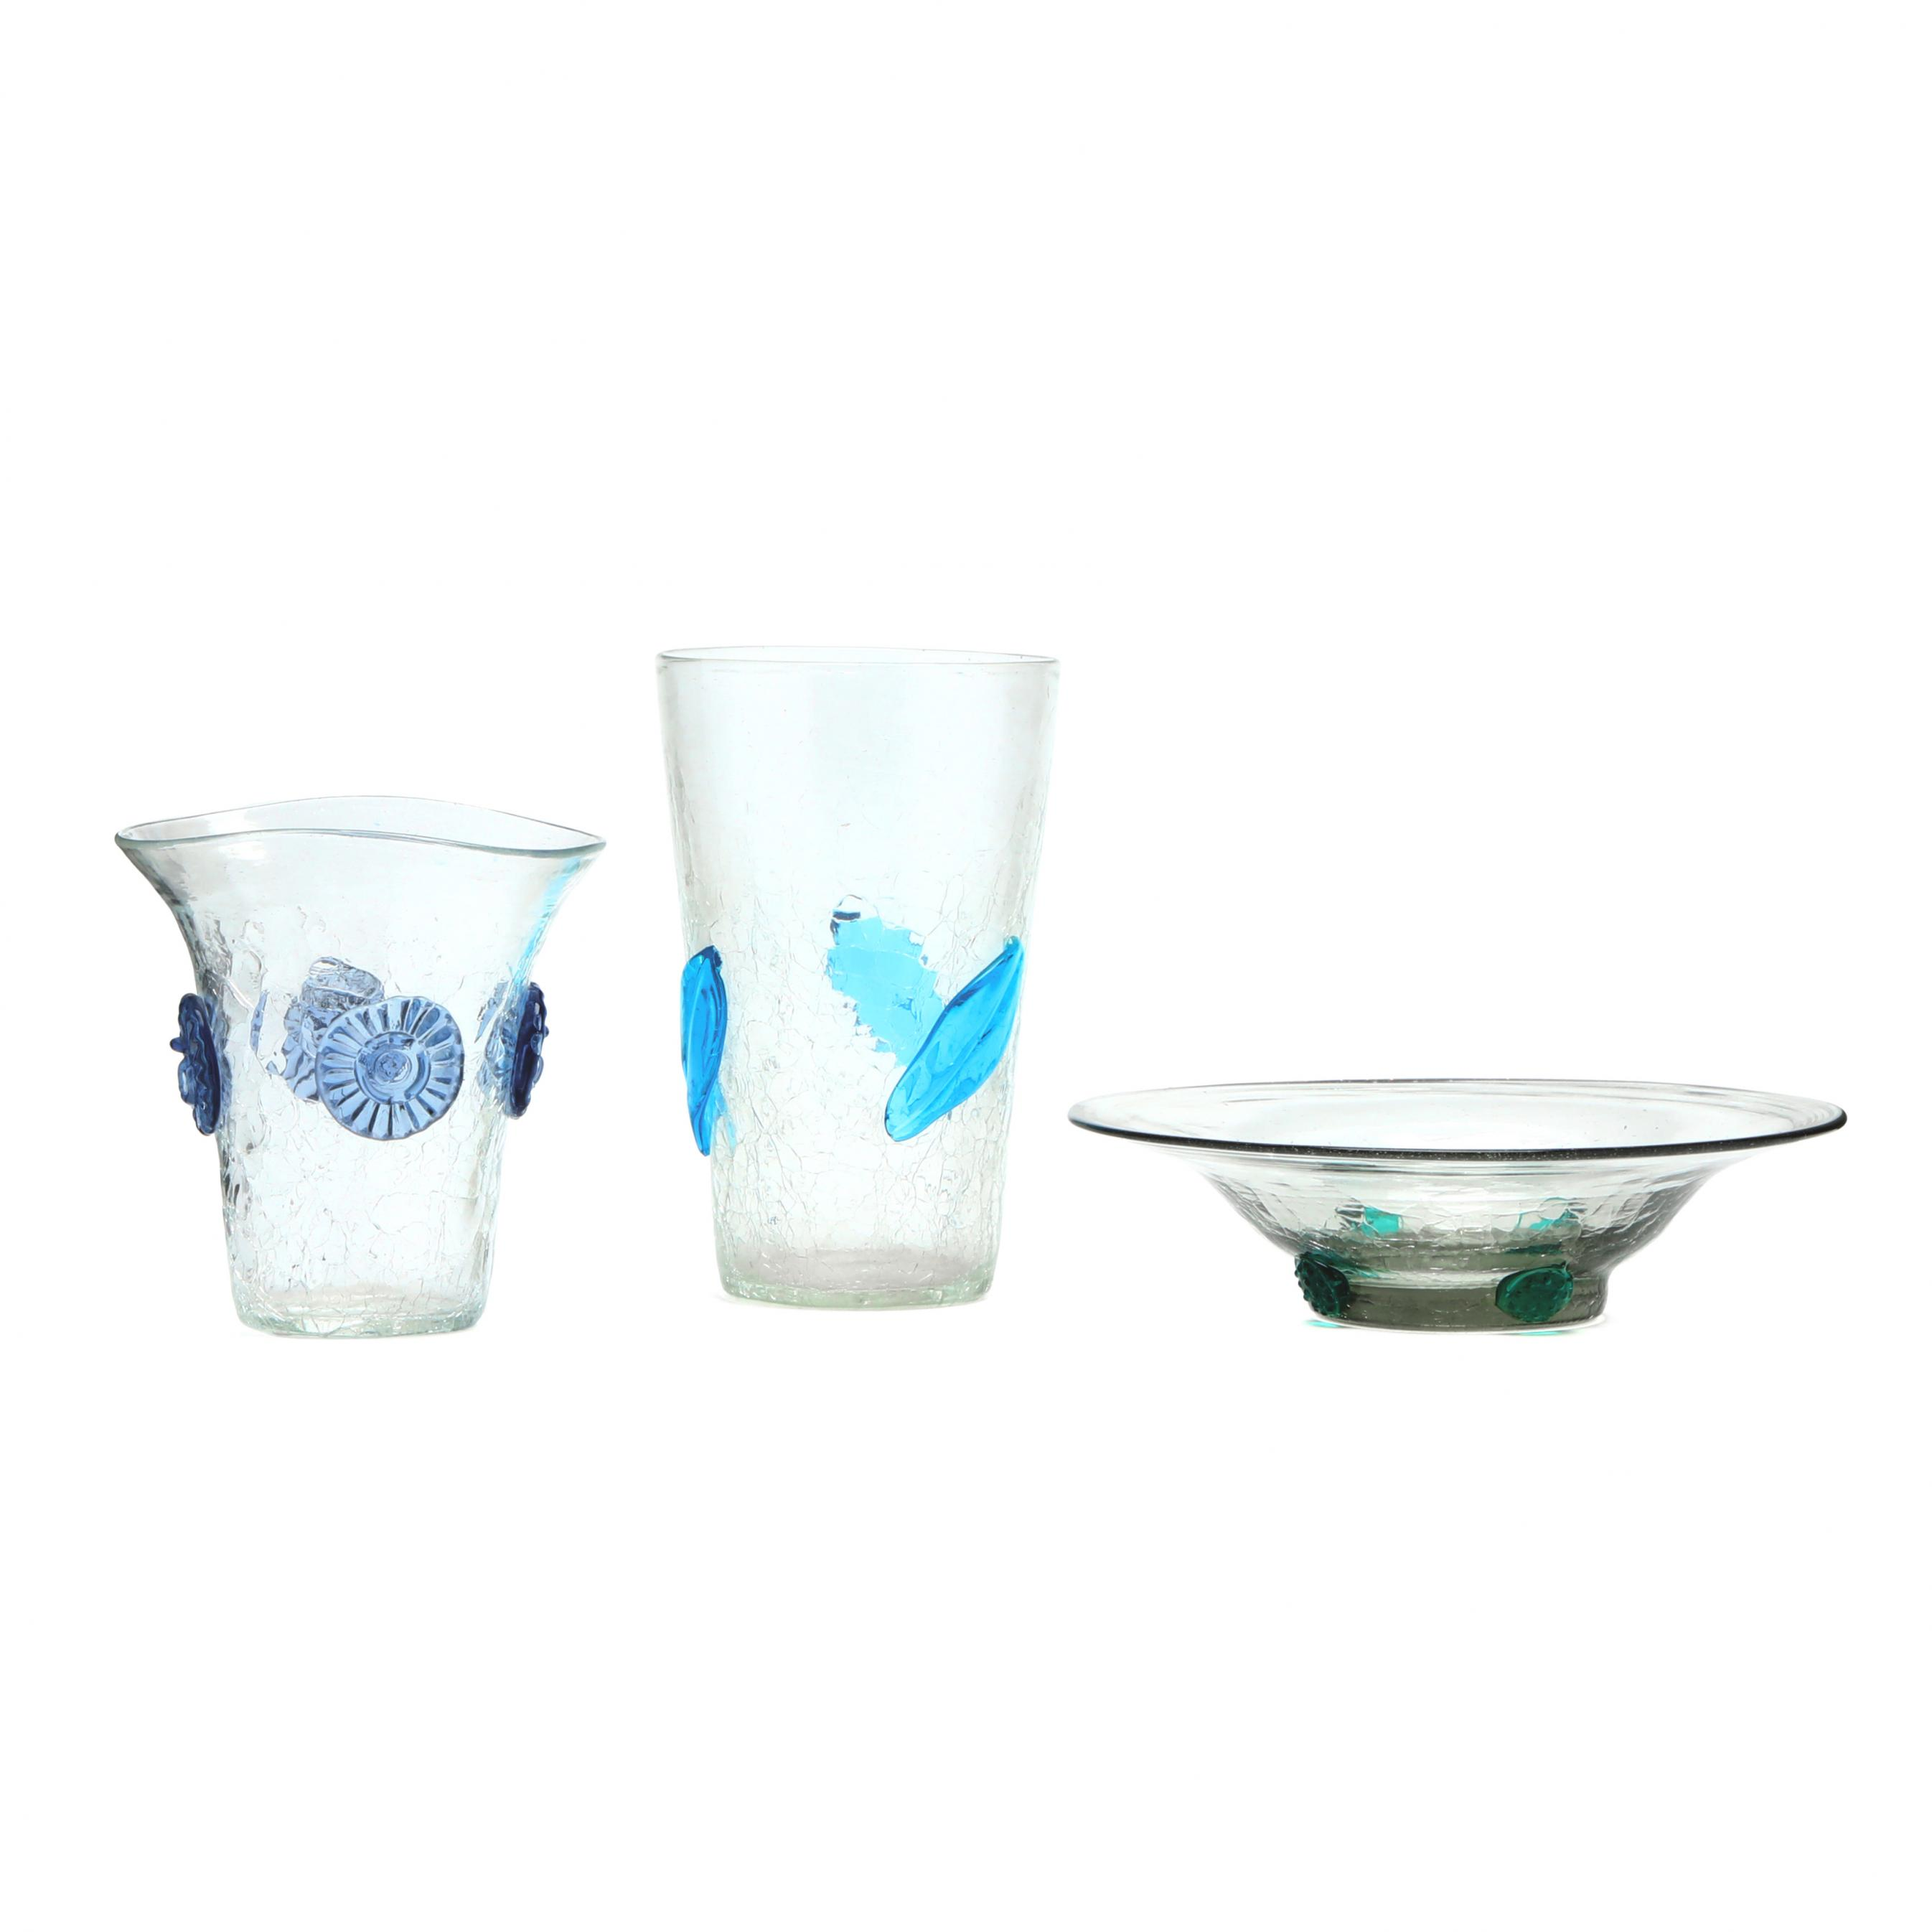 blenko-three-pieces-of-decorated-crackle-glass